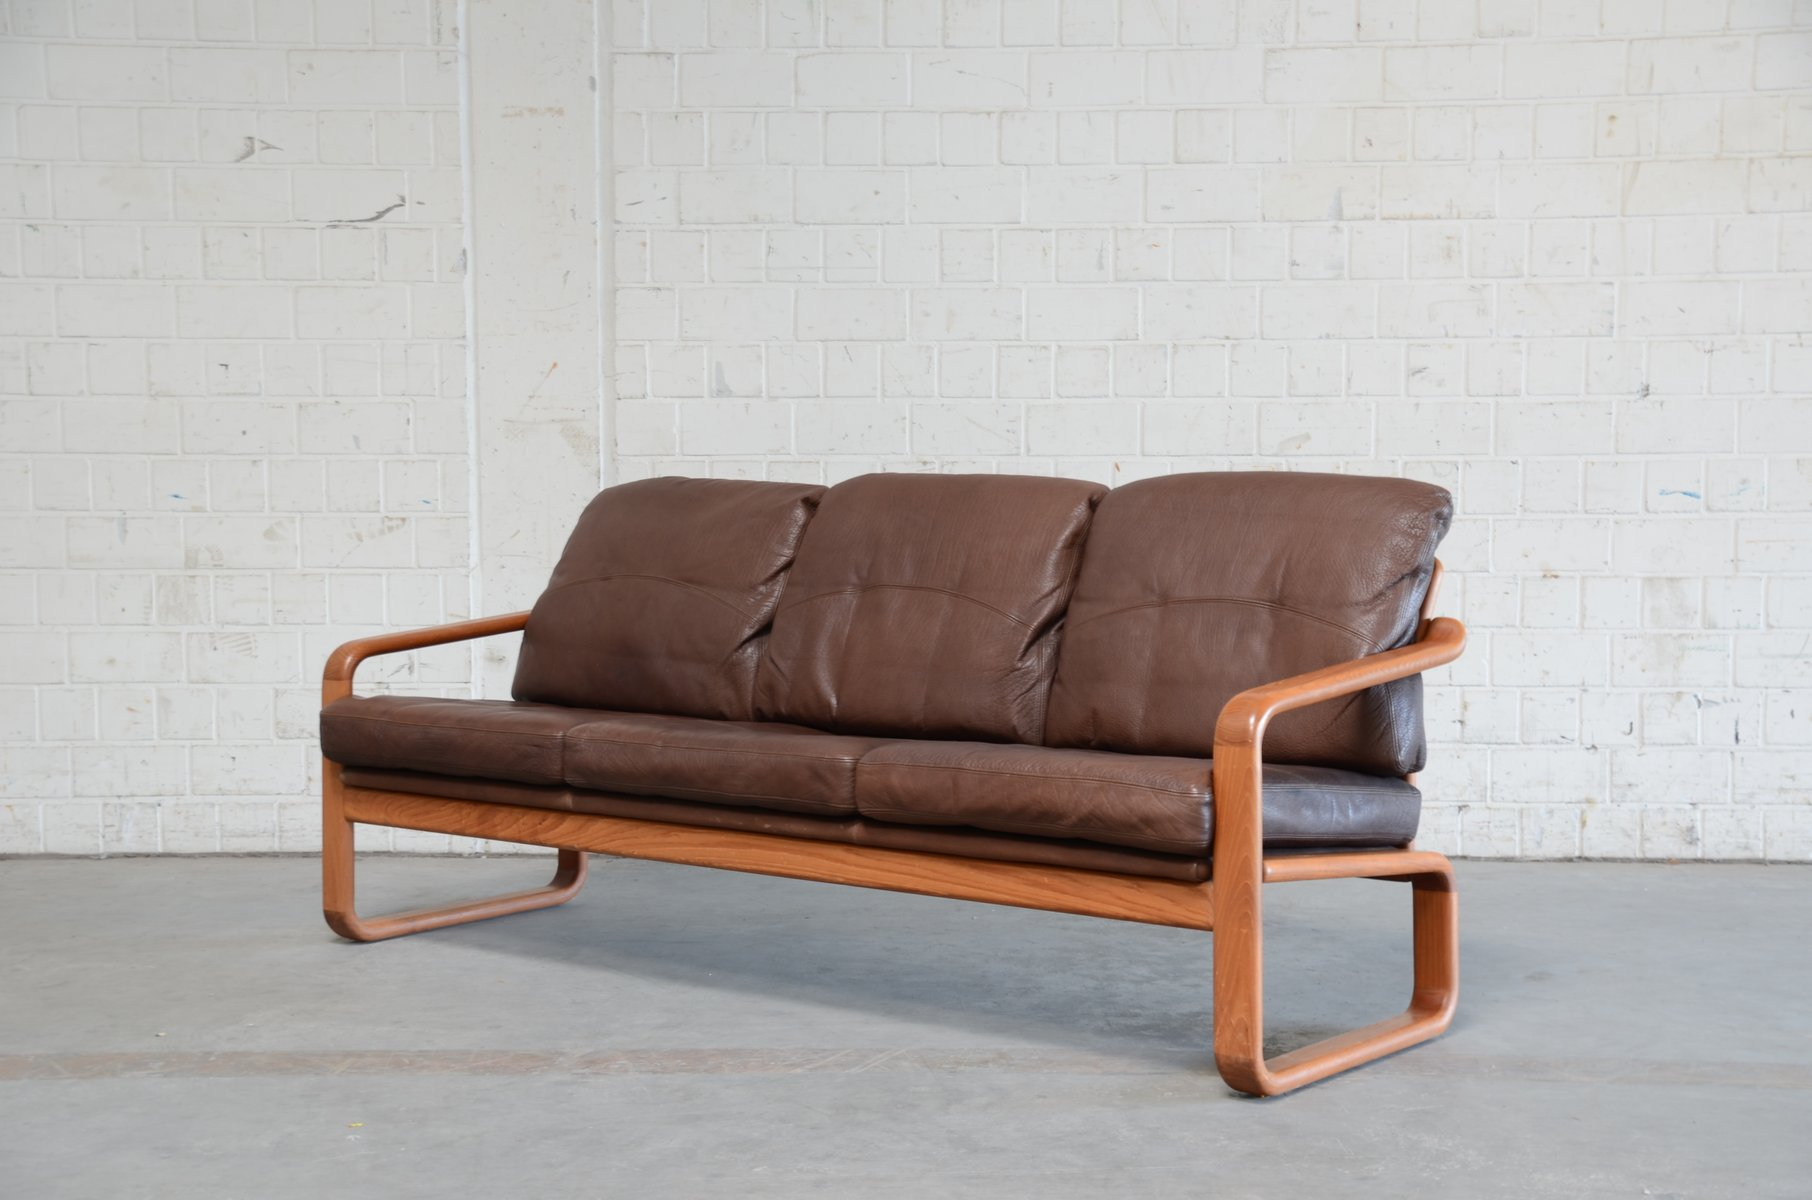 vintage sofa aus braunem leder teak von m belfabrik holstebro bei pamono kaufen. Black Bedroom Furniture Sets. Home Design Ideas